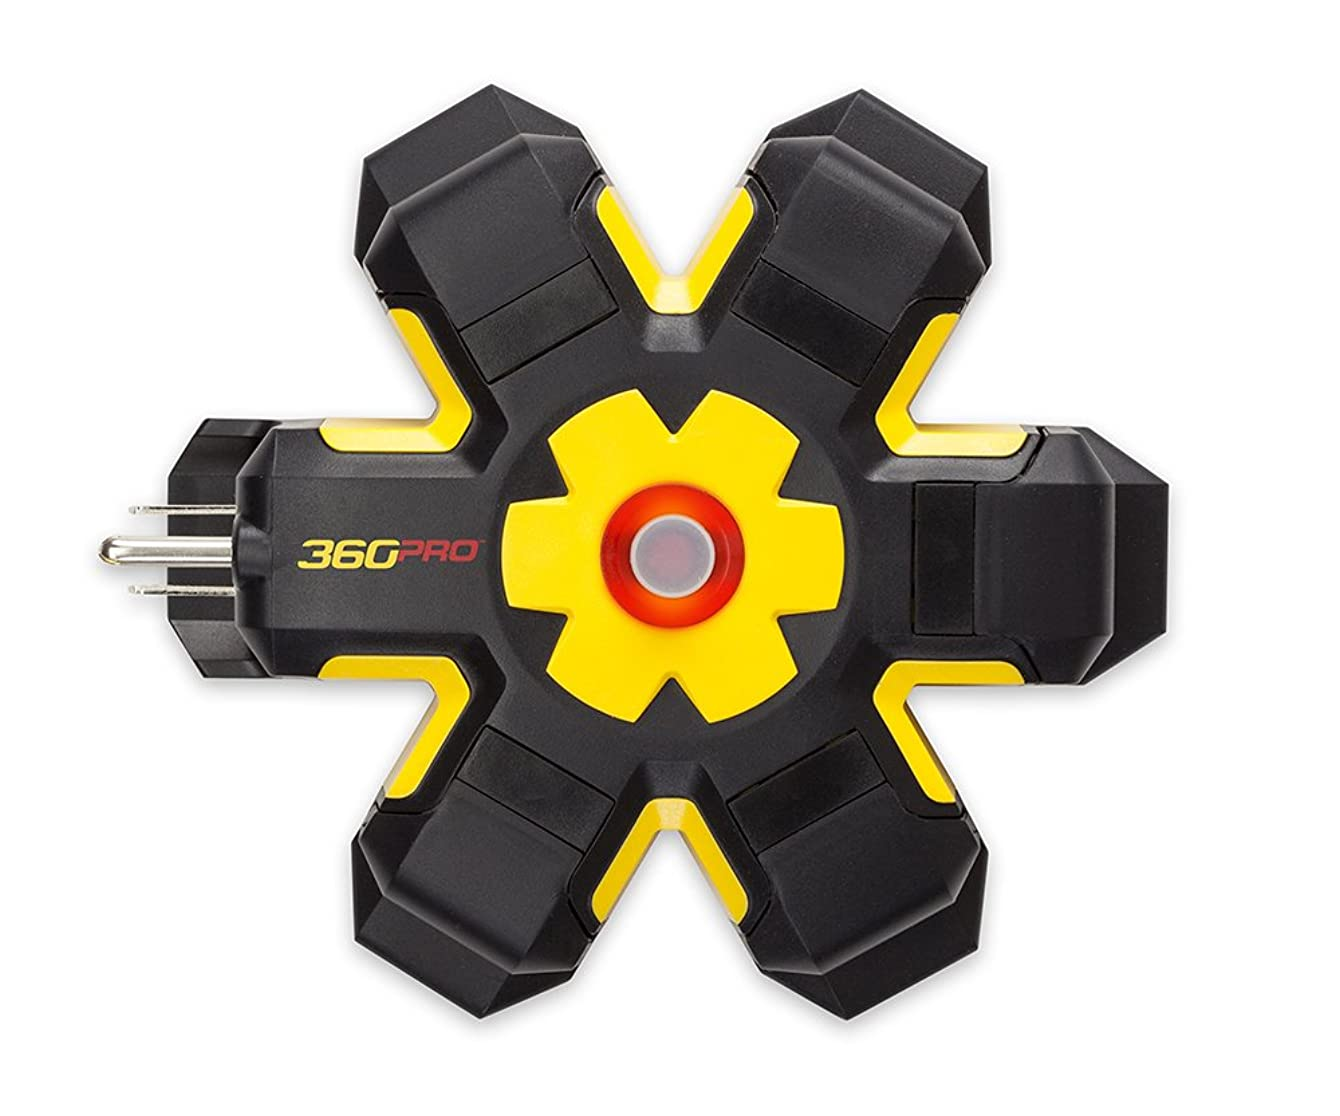 360 Electrical 36000 Pro Heavy Duty 5 Outlet Hub with Hexacore, Black/Yellow